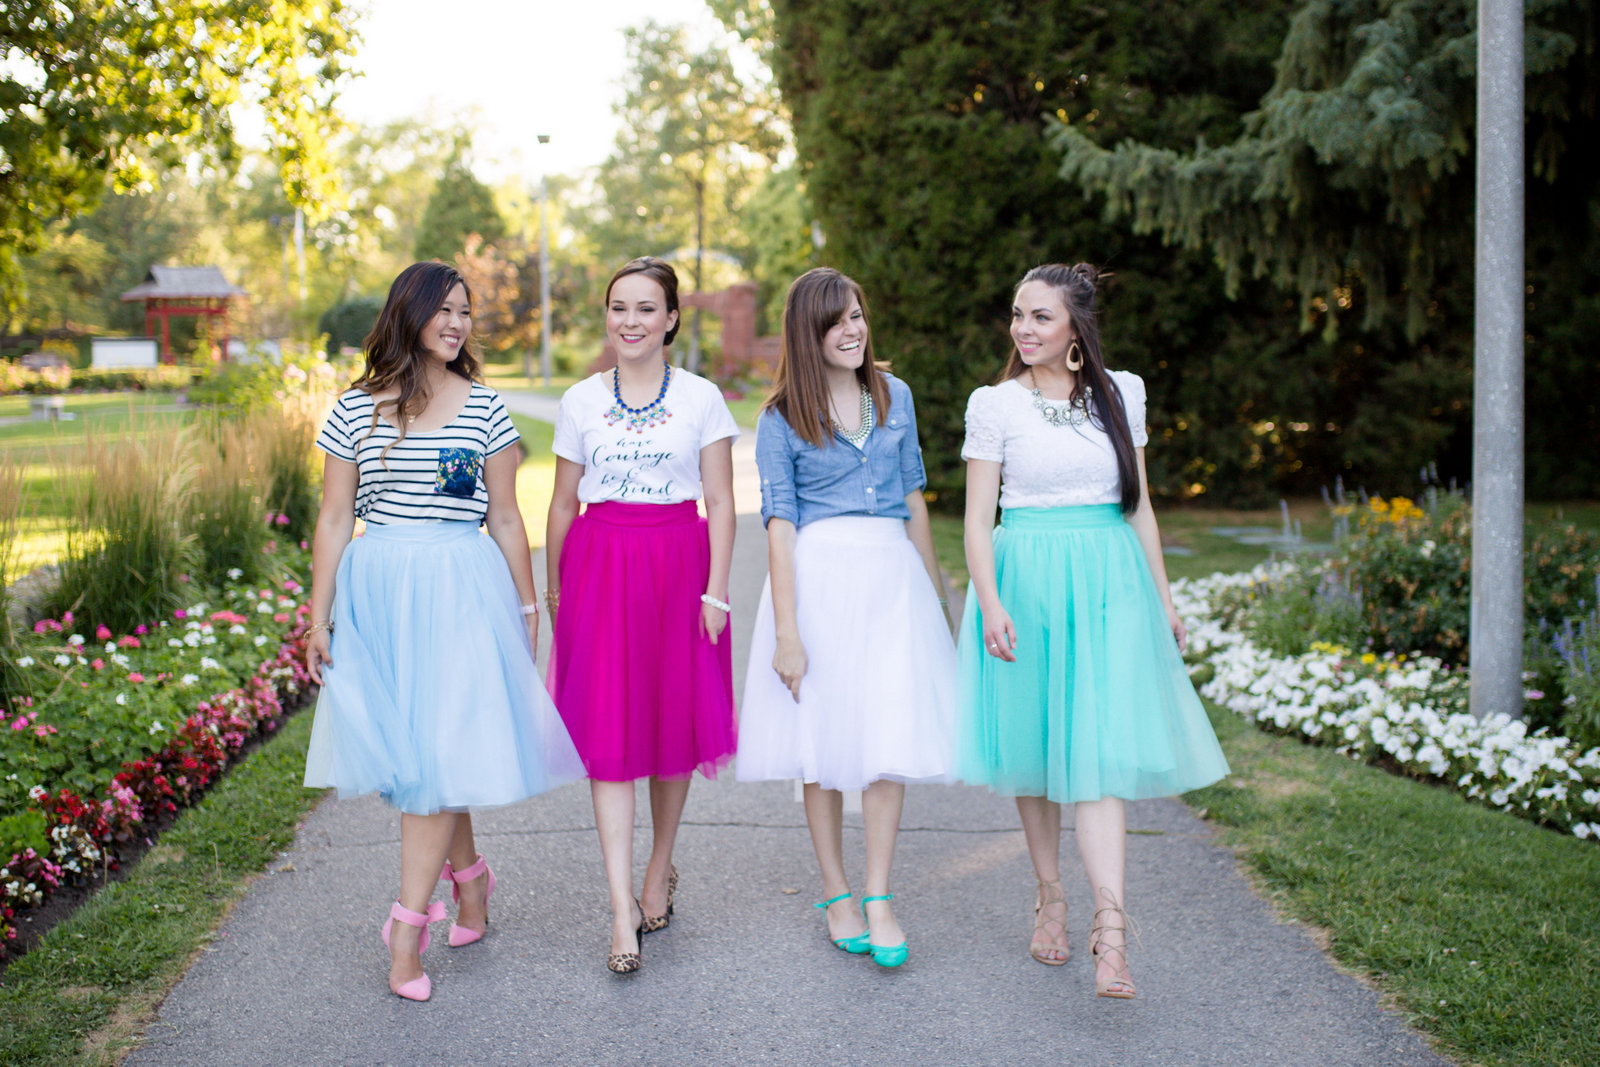 Utah fashion bloggers in tulle skirts